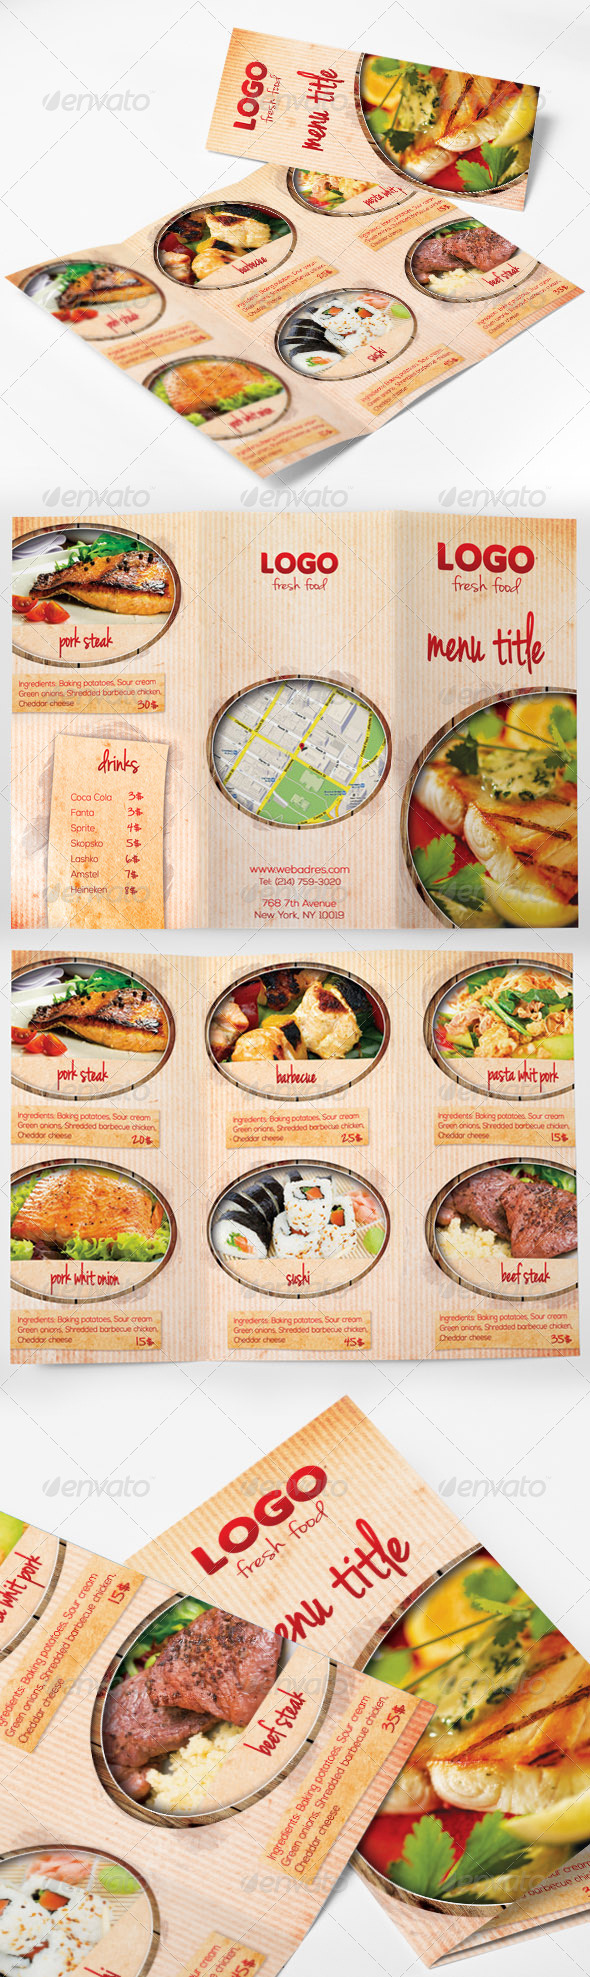 Food Menu Tri-fold Brochure - Food Menus Print Templates